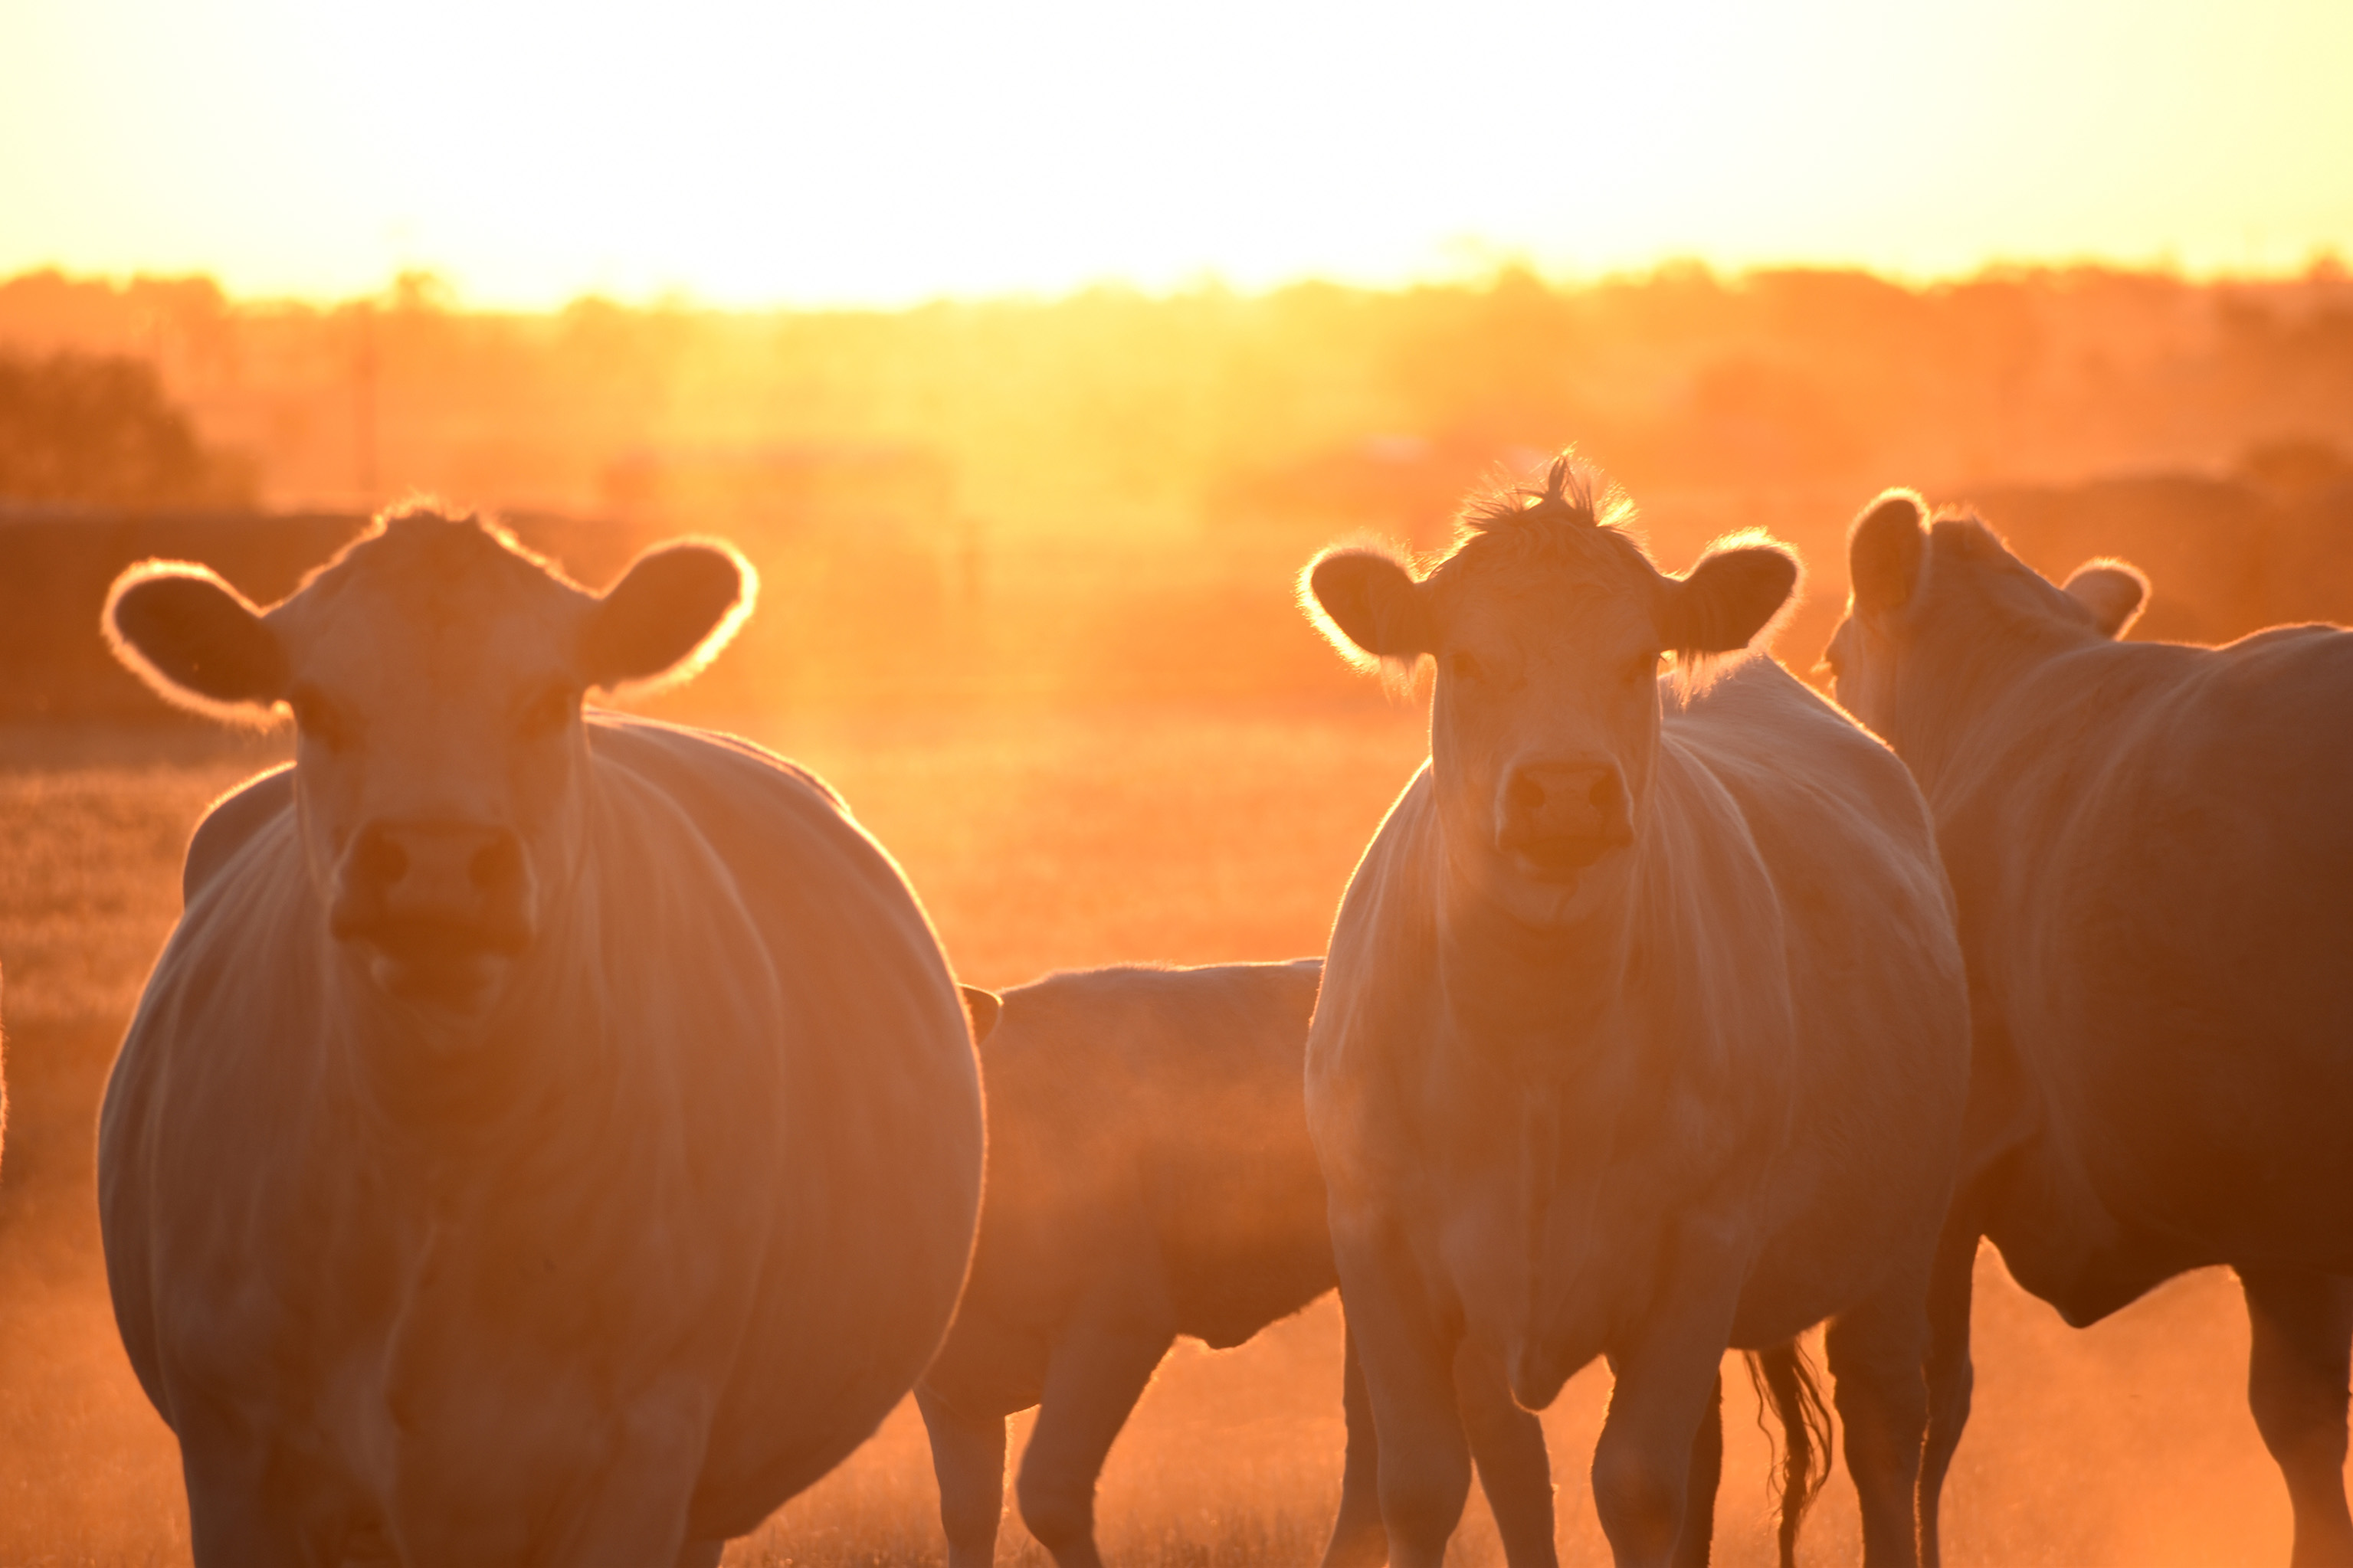 Cows in Sunset blog